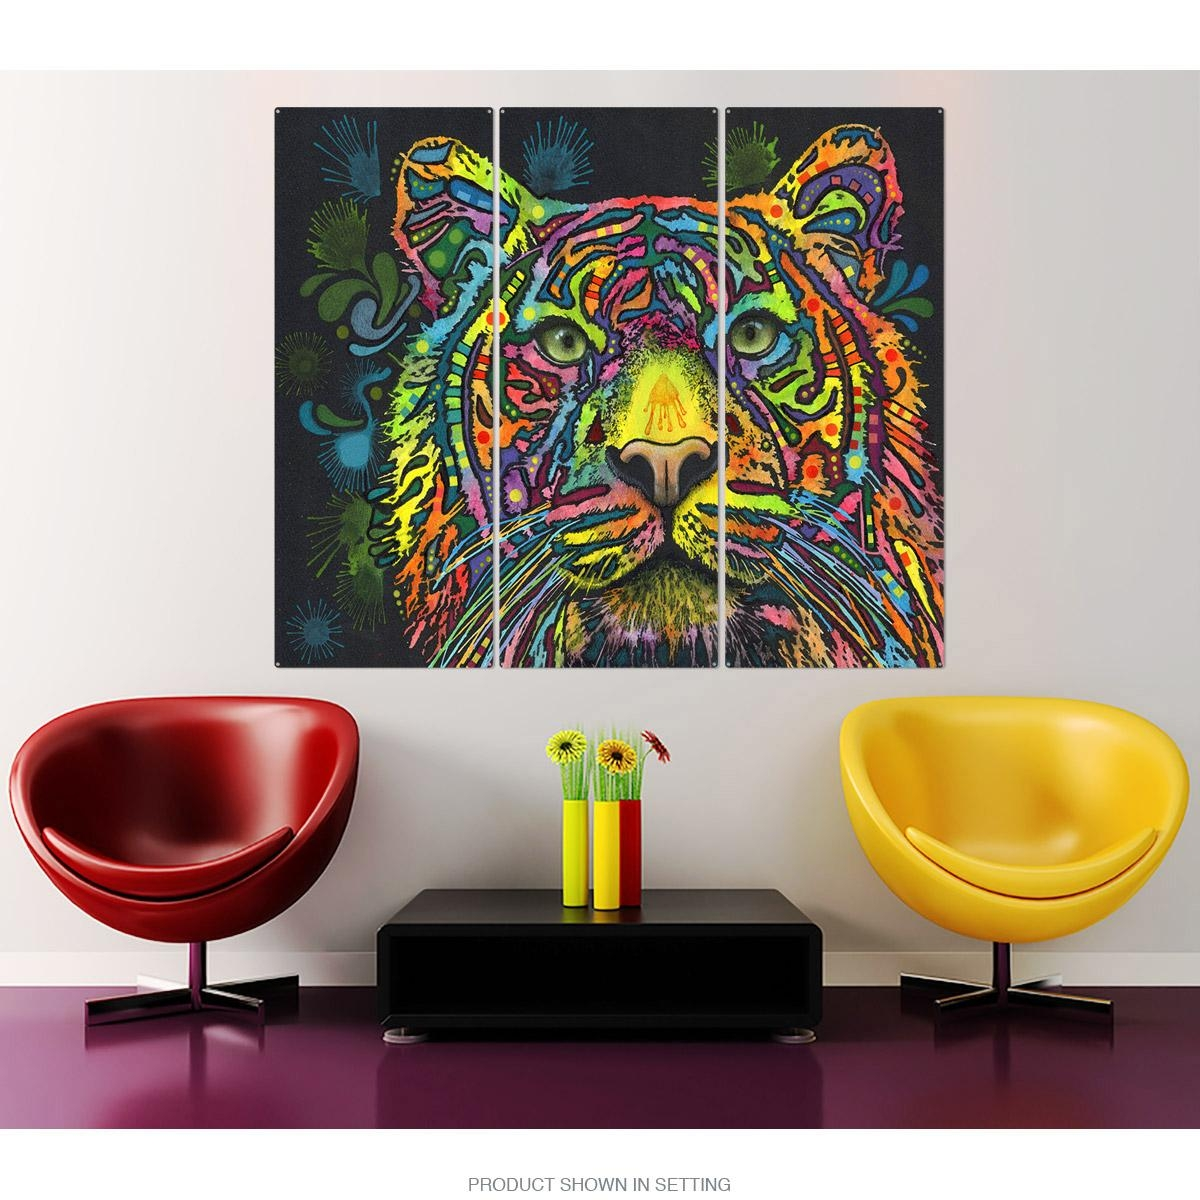 Tiger Big Cat Dean Russo Triptych Metal Wall Art Pop Art | Large For Large Triptych Wall Art (Image 13 of 20)